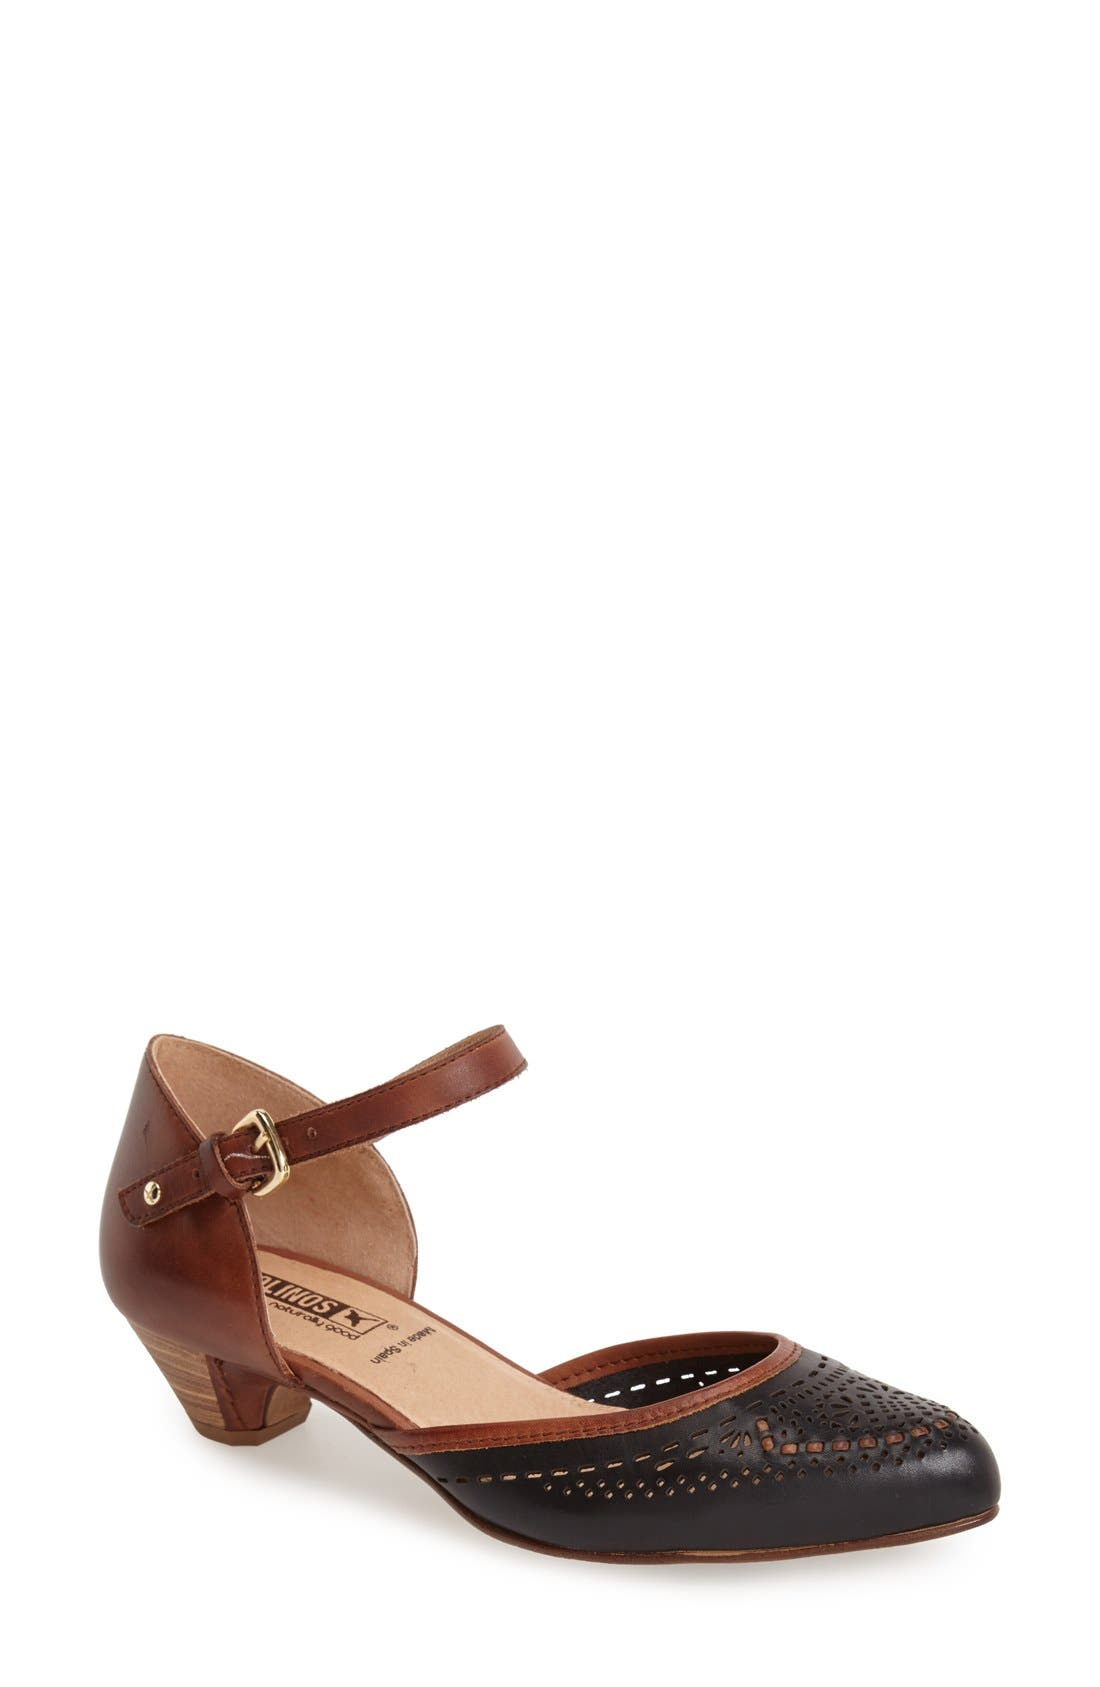 'Elba' Perforated Leather Ankle Strap Sandal,                             Main thumbnail 1, color,                             Black Leather